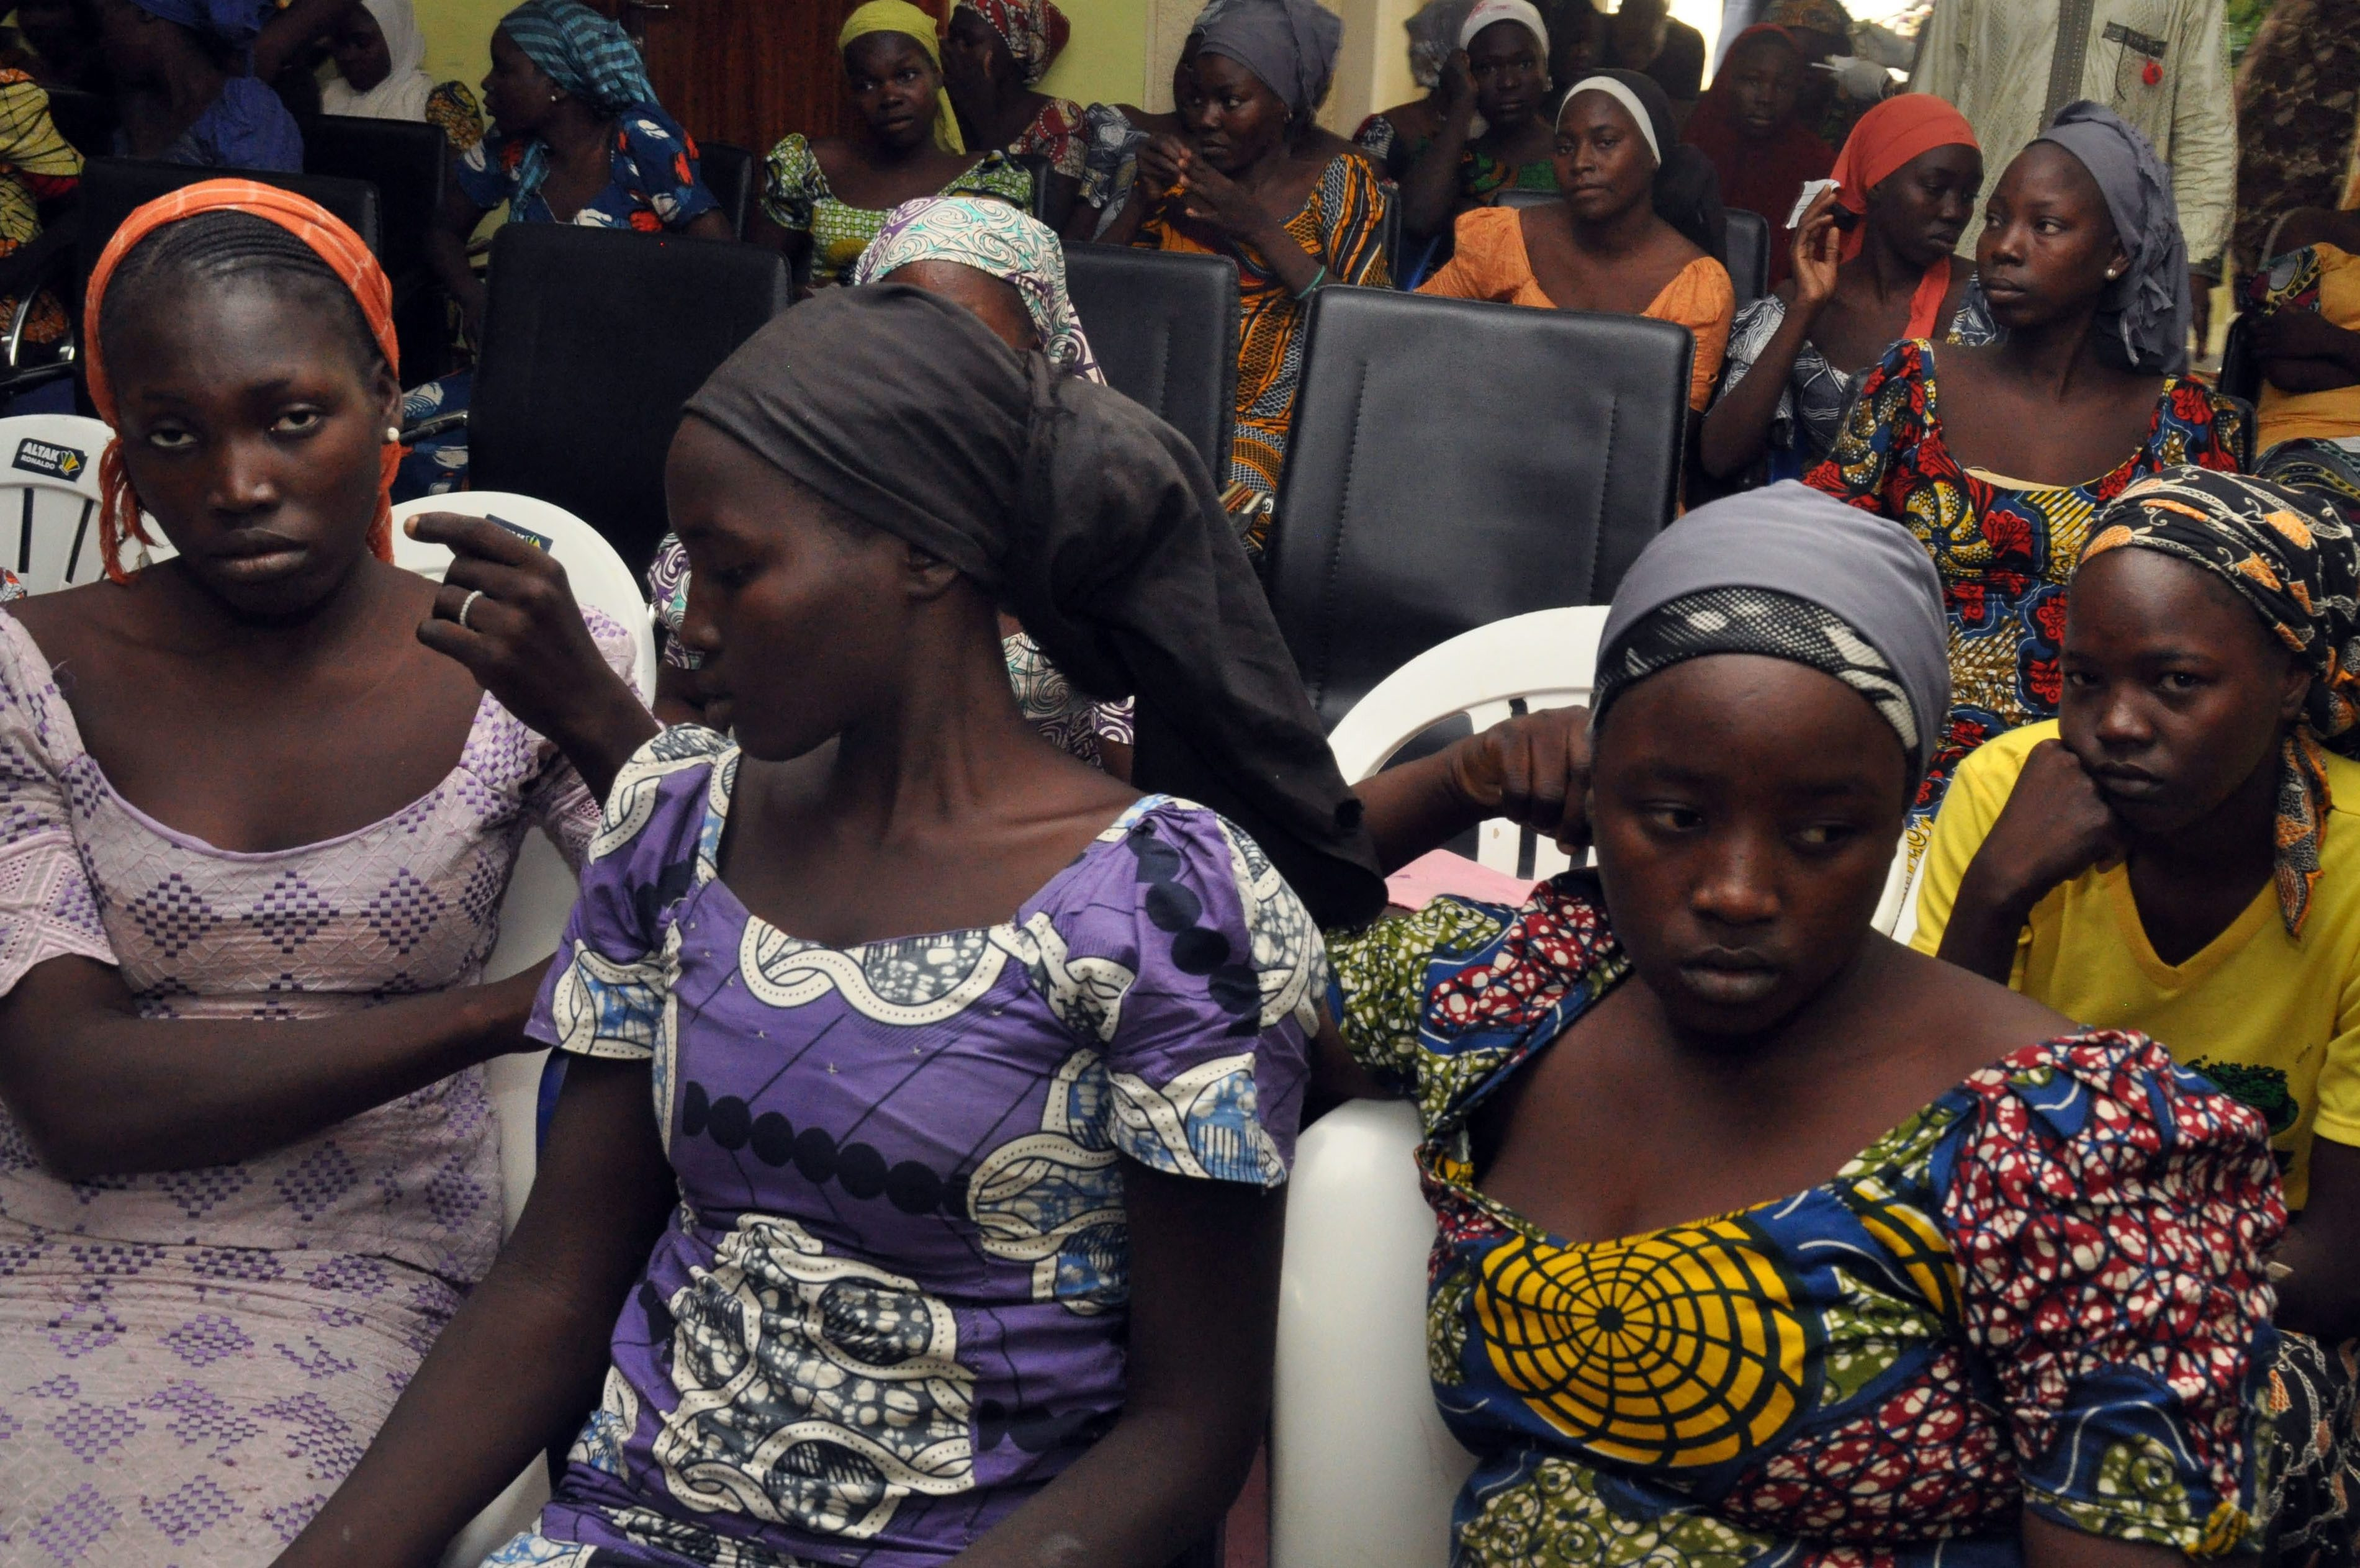 Boko Haram and other news